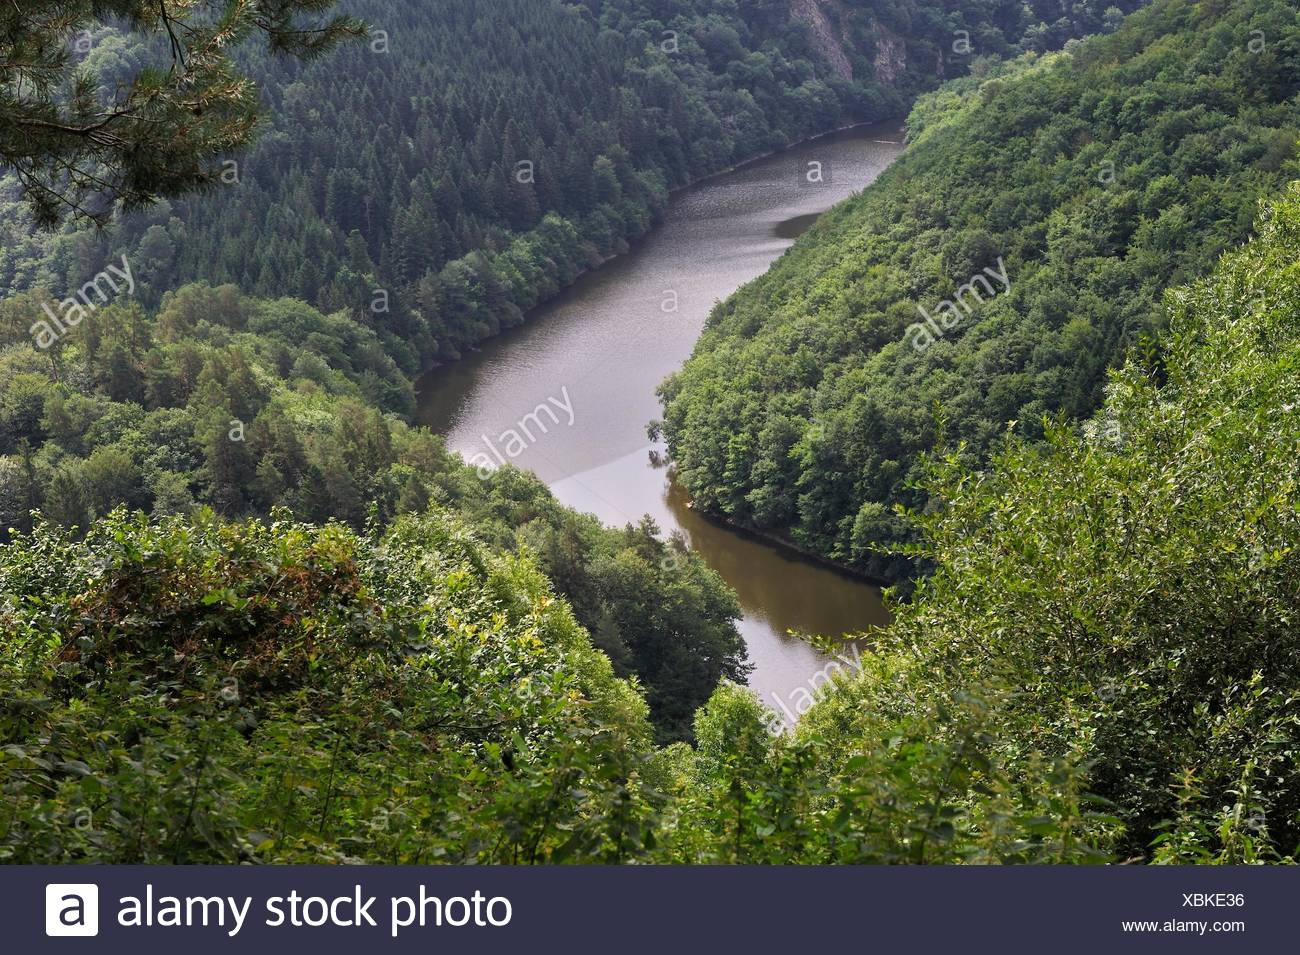 lake of Fades-Besserve bisected by the Sioule River, Puy-de-Dome department, Auvergne-Rhone-Alpes region, France, Europe. - Stock Image